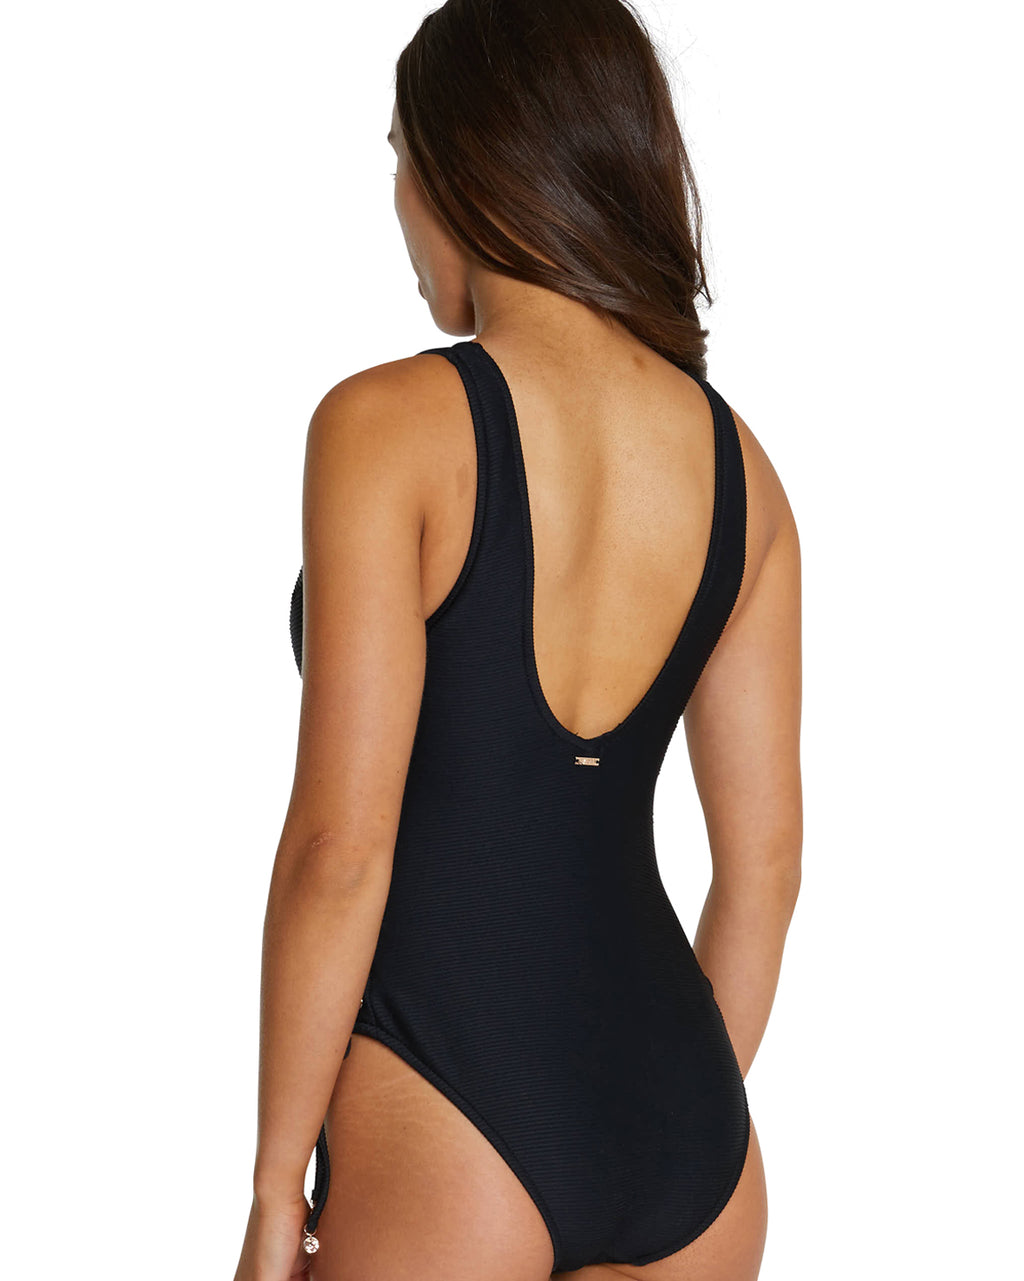 RIBTIDE HIGH NECK ZIP FRONT ONE PIECE SWIMSUIT